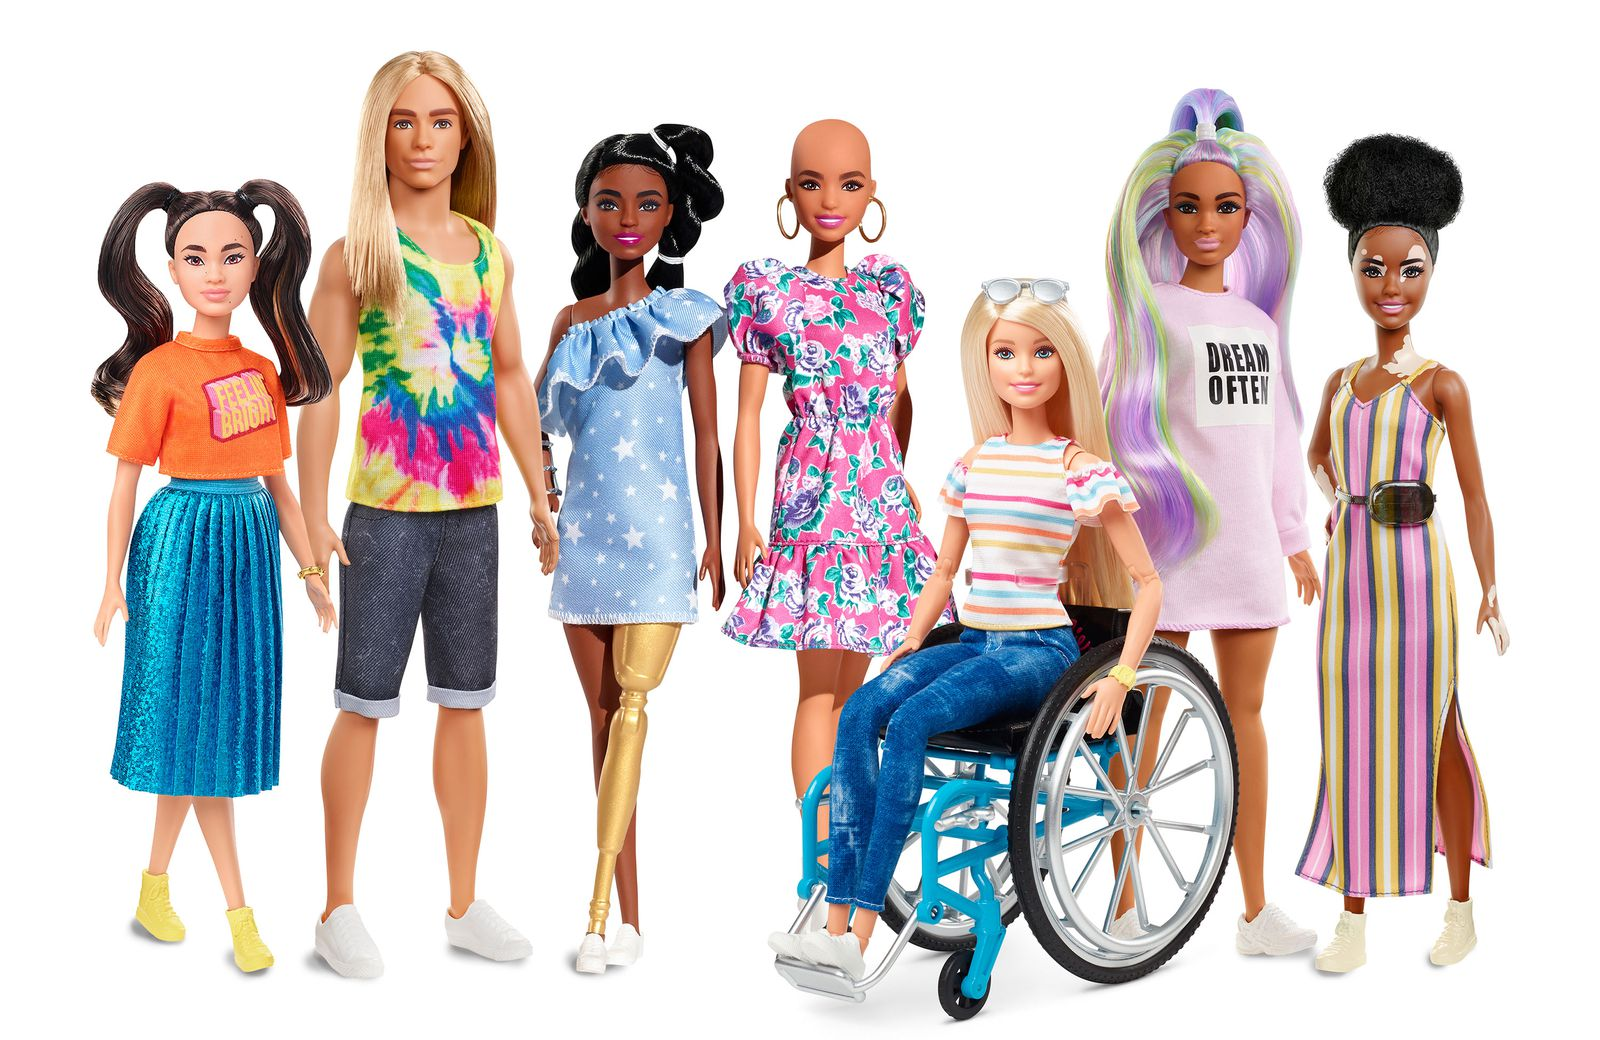 Meet The New Wave Of More Diverse Barbie Dolls Smart News Smithsonian Magazine